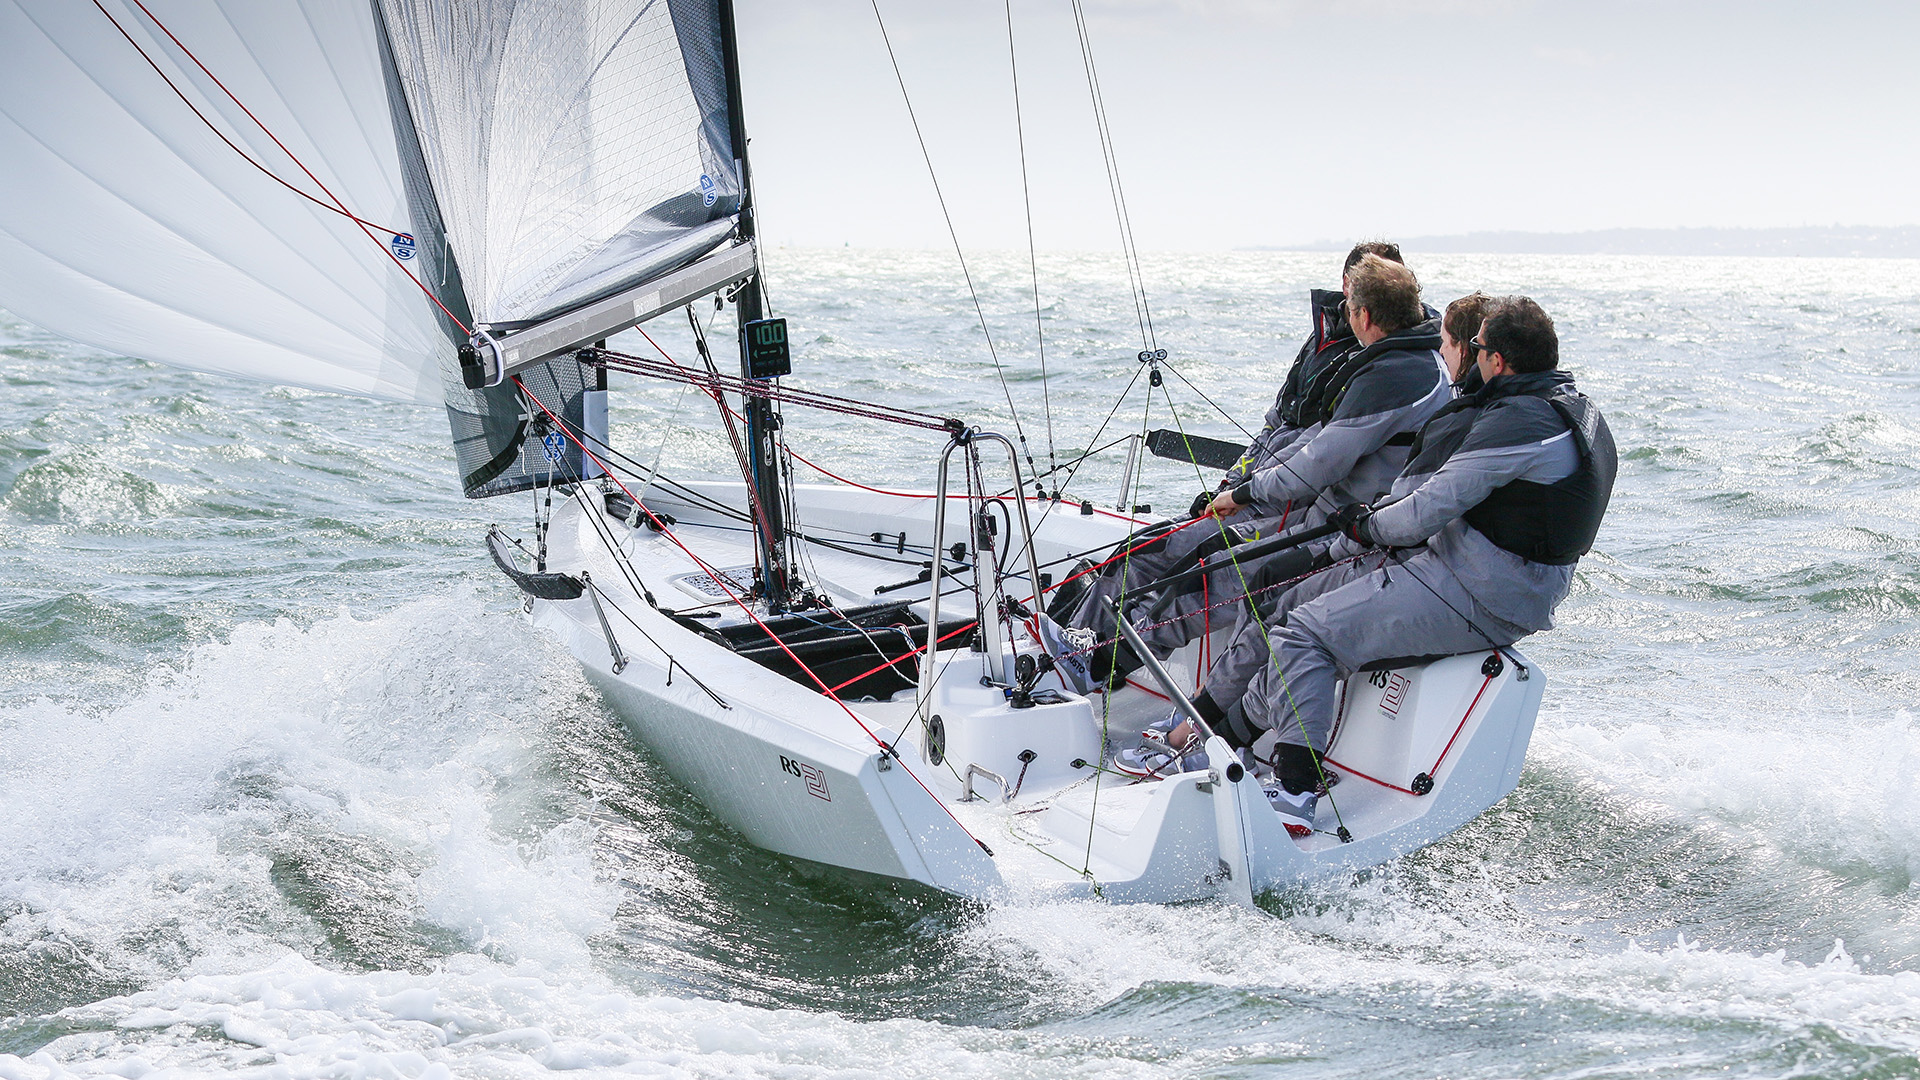 hight resolution of rs21 keelboat sailing cowes